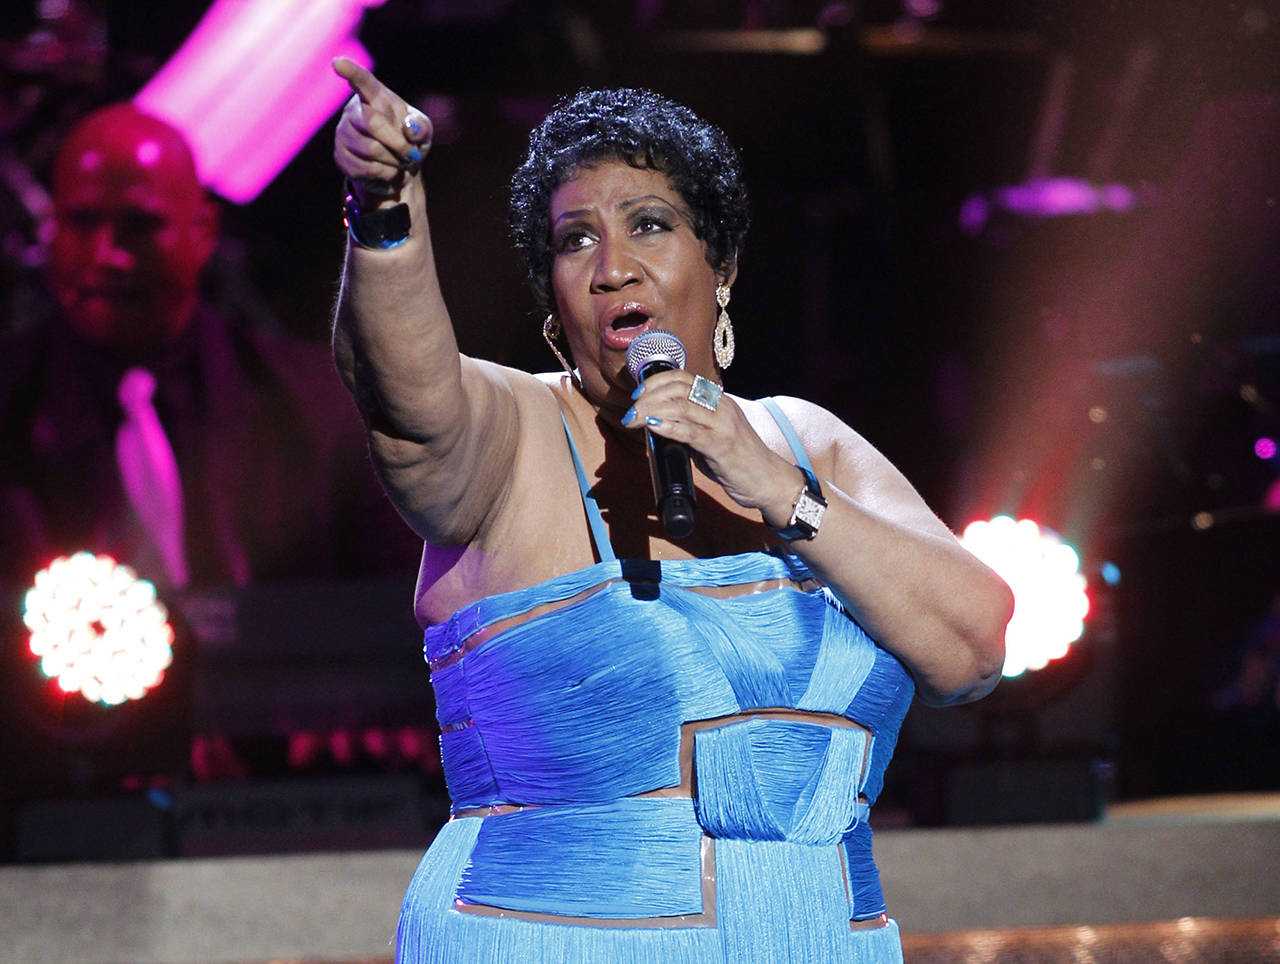 This 2012 photo shows singer Aretha Franklin performing during the BET Honors at the Warner Theatre in Washington. Franklin died Thursday, Aug. 16, at her home in Detroit. She was 76. (AP Photo/Jose Luis Magana, File)